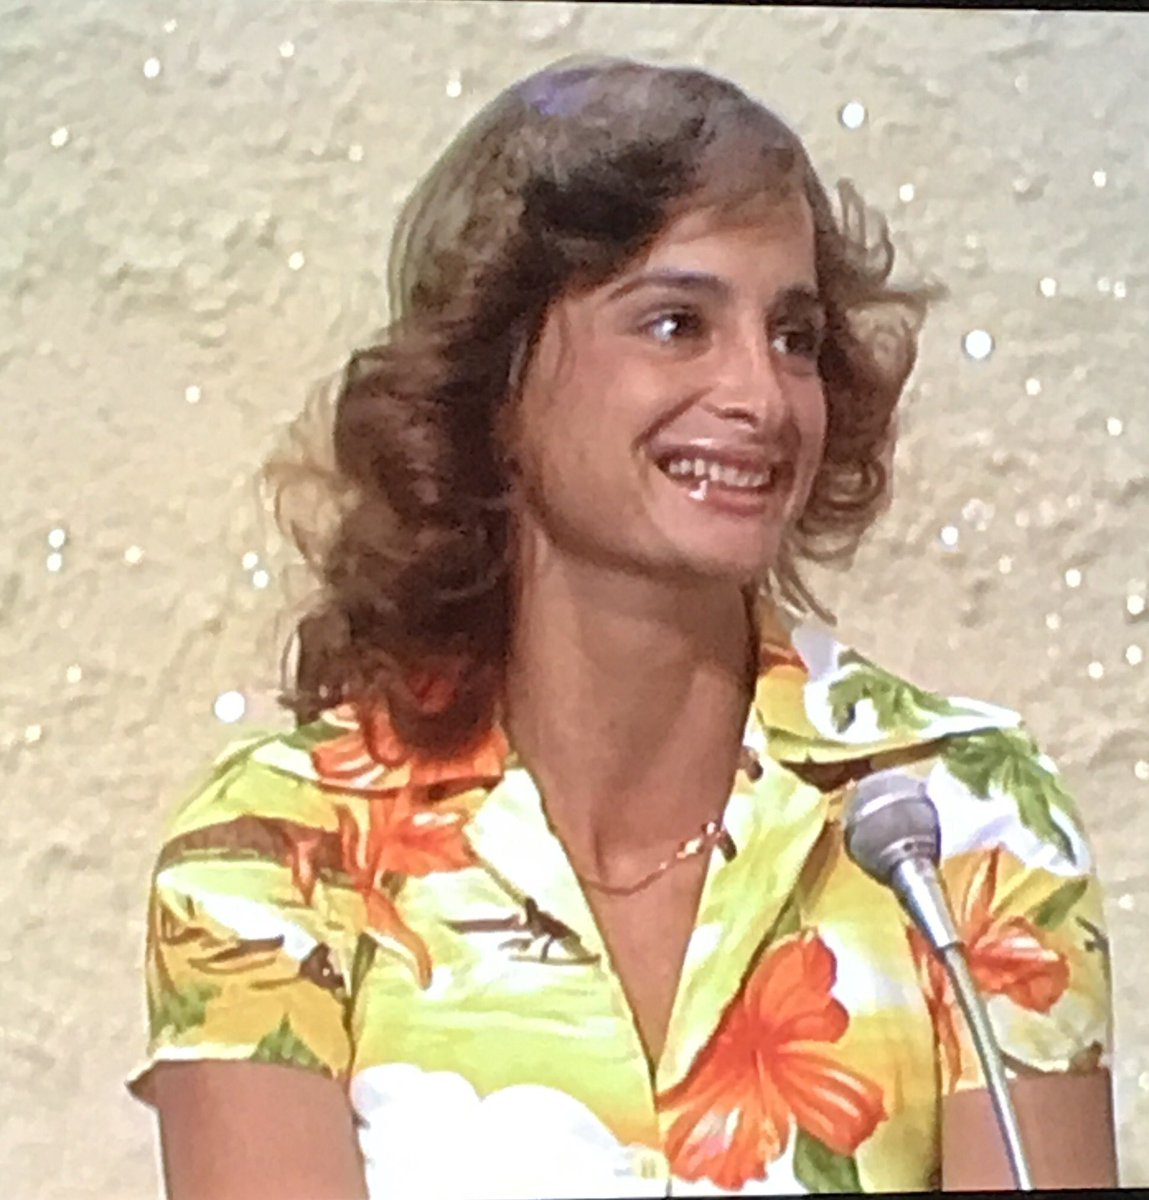 Love it when an old game show player ends up becoming famous--like Patti Paniccia (below), who in 1977 was a student in Hawaii and fledging surfer. She went on to be a big deal in surfing, a CNN reporter and a law professor. https://t.co/cPqQoPY4Db